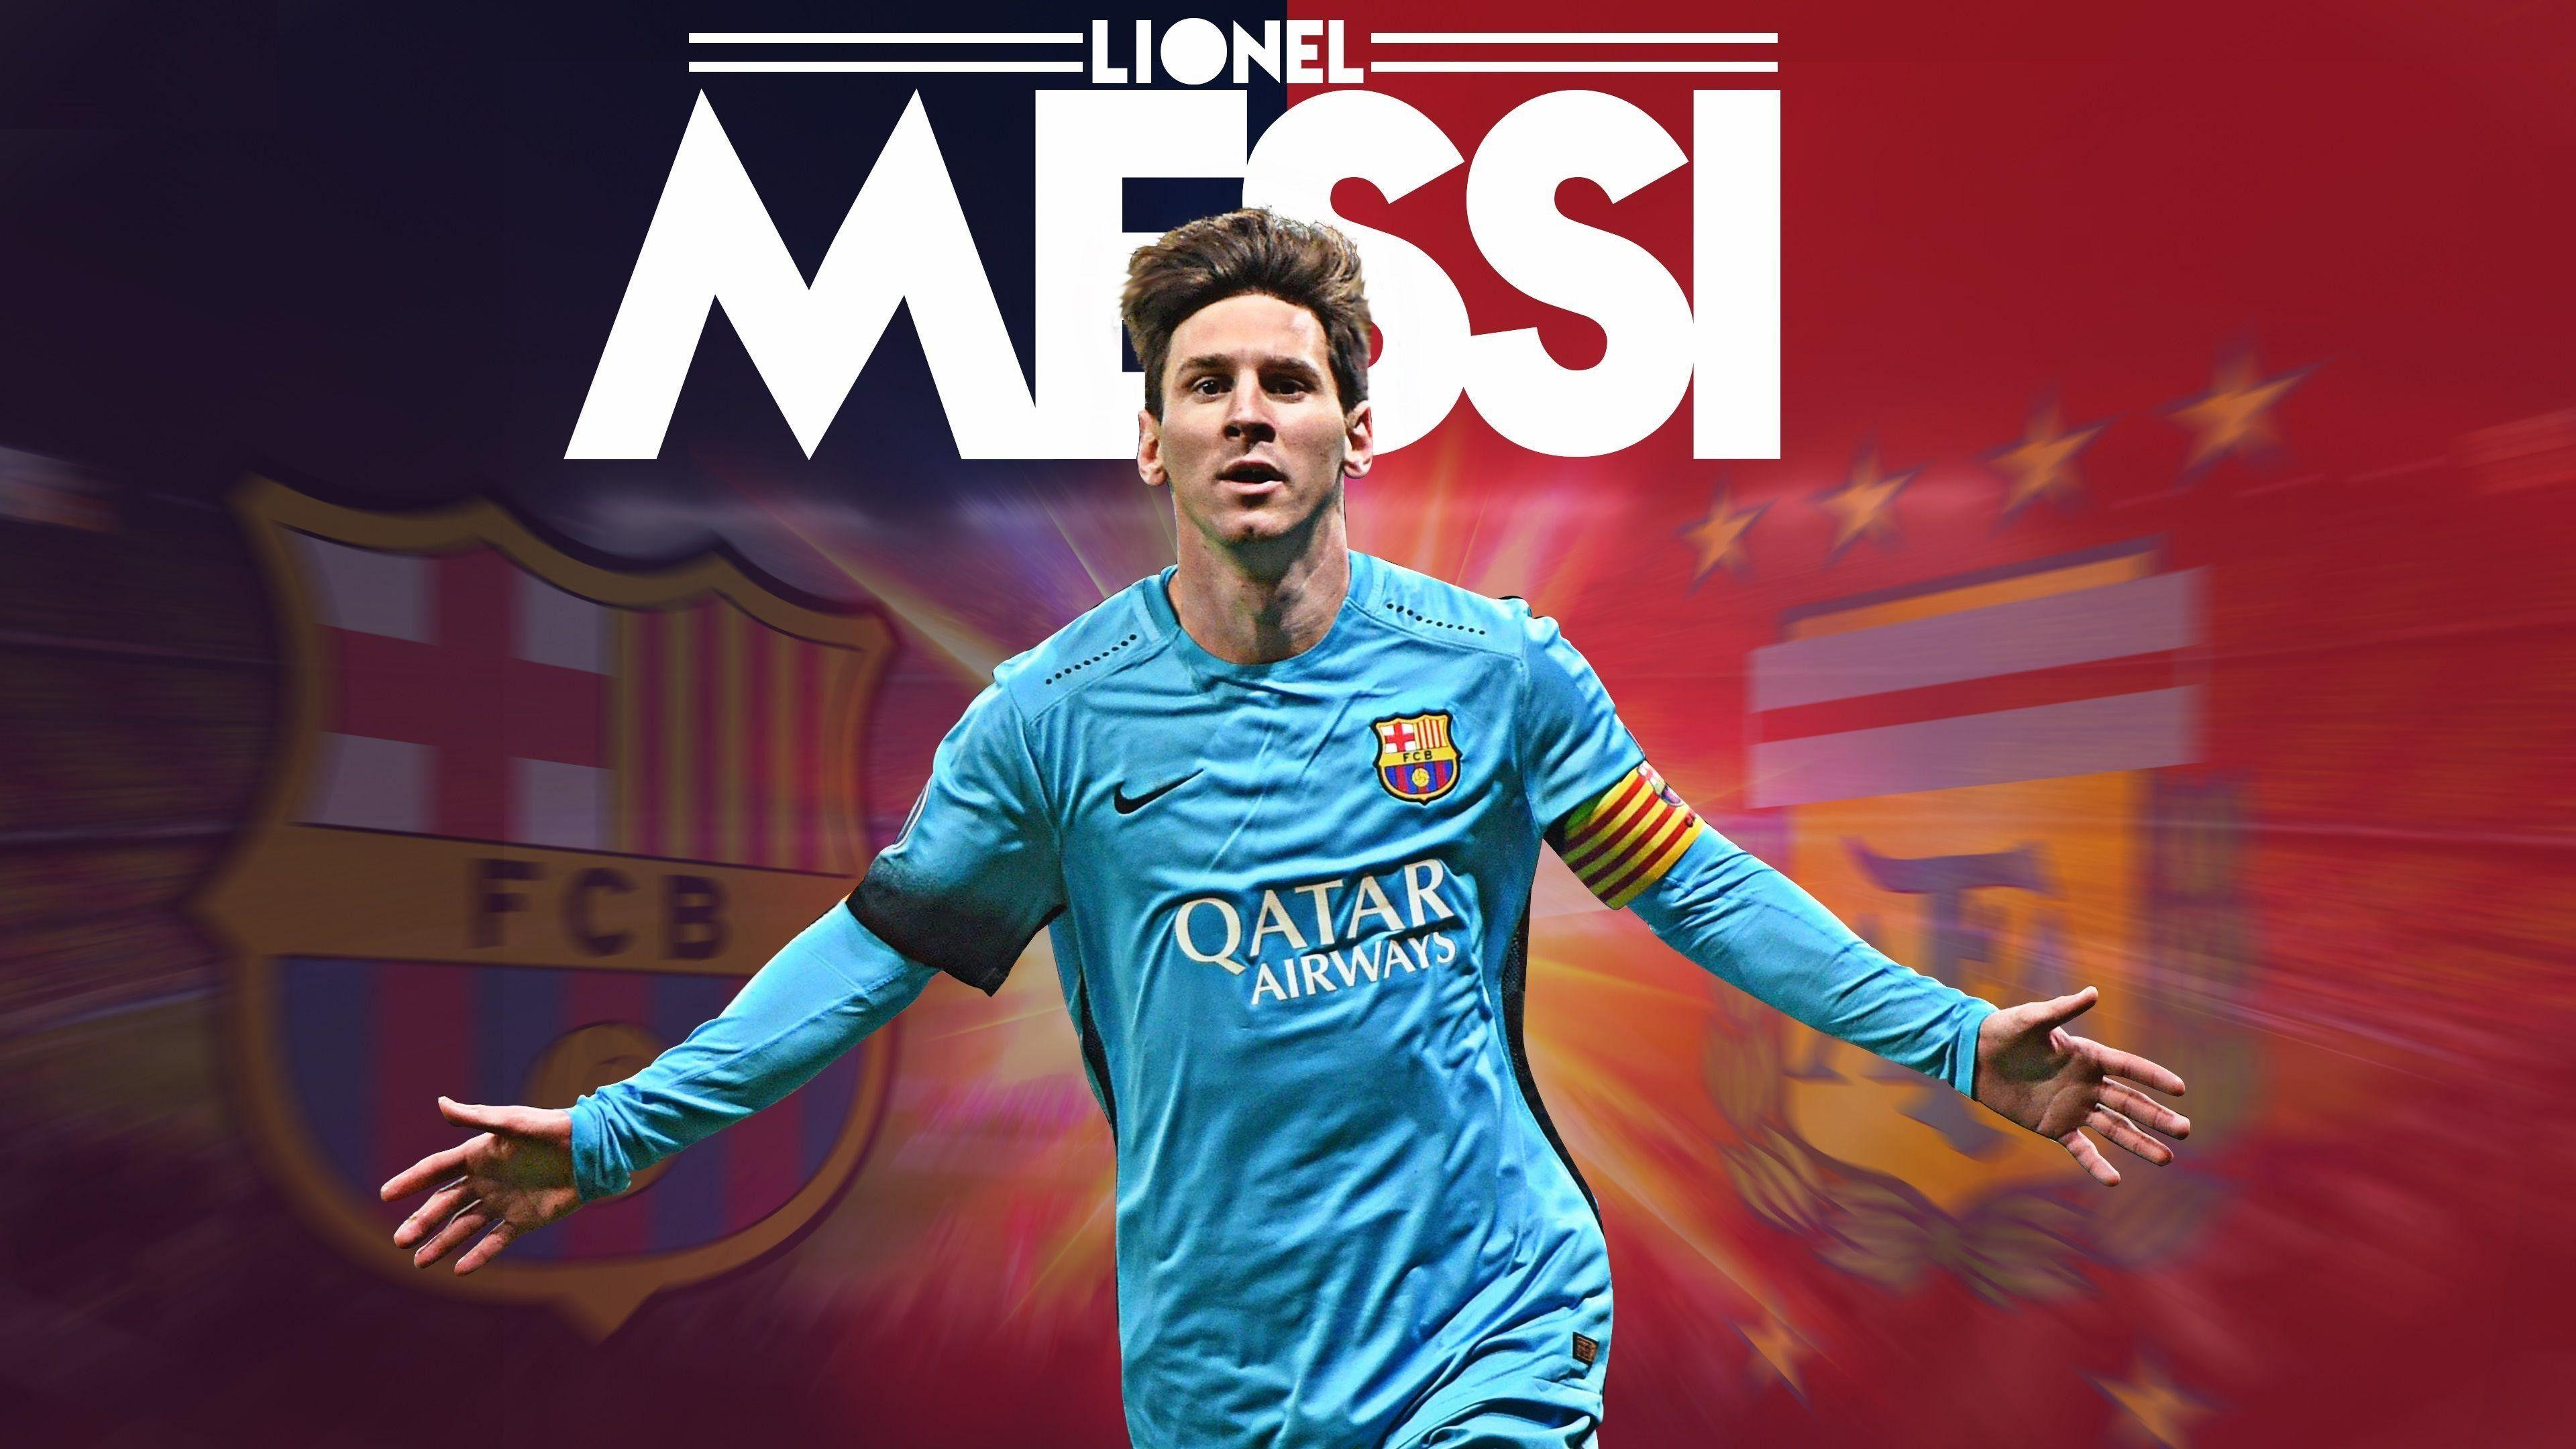 Lionel Messi Wallpapers 2017 ·①